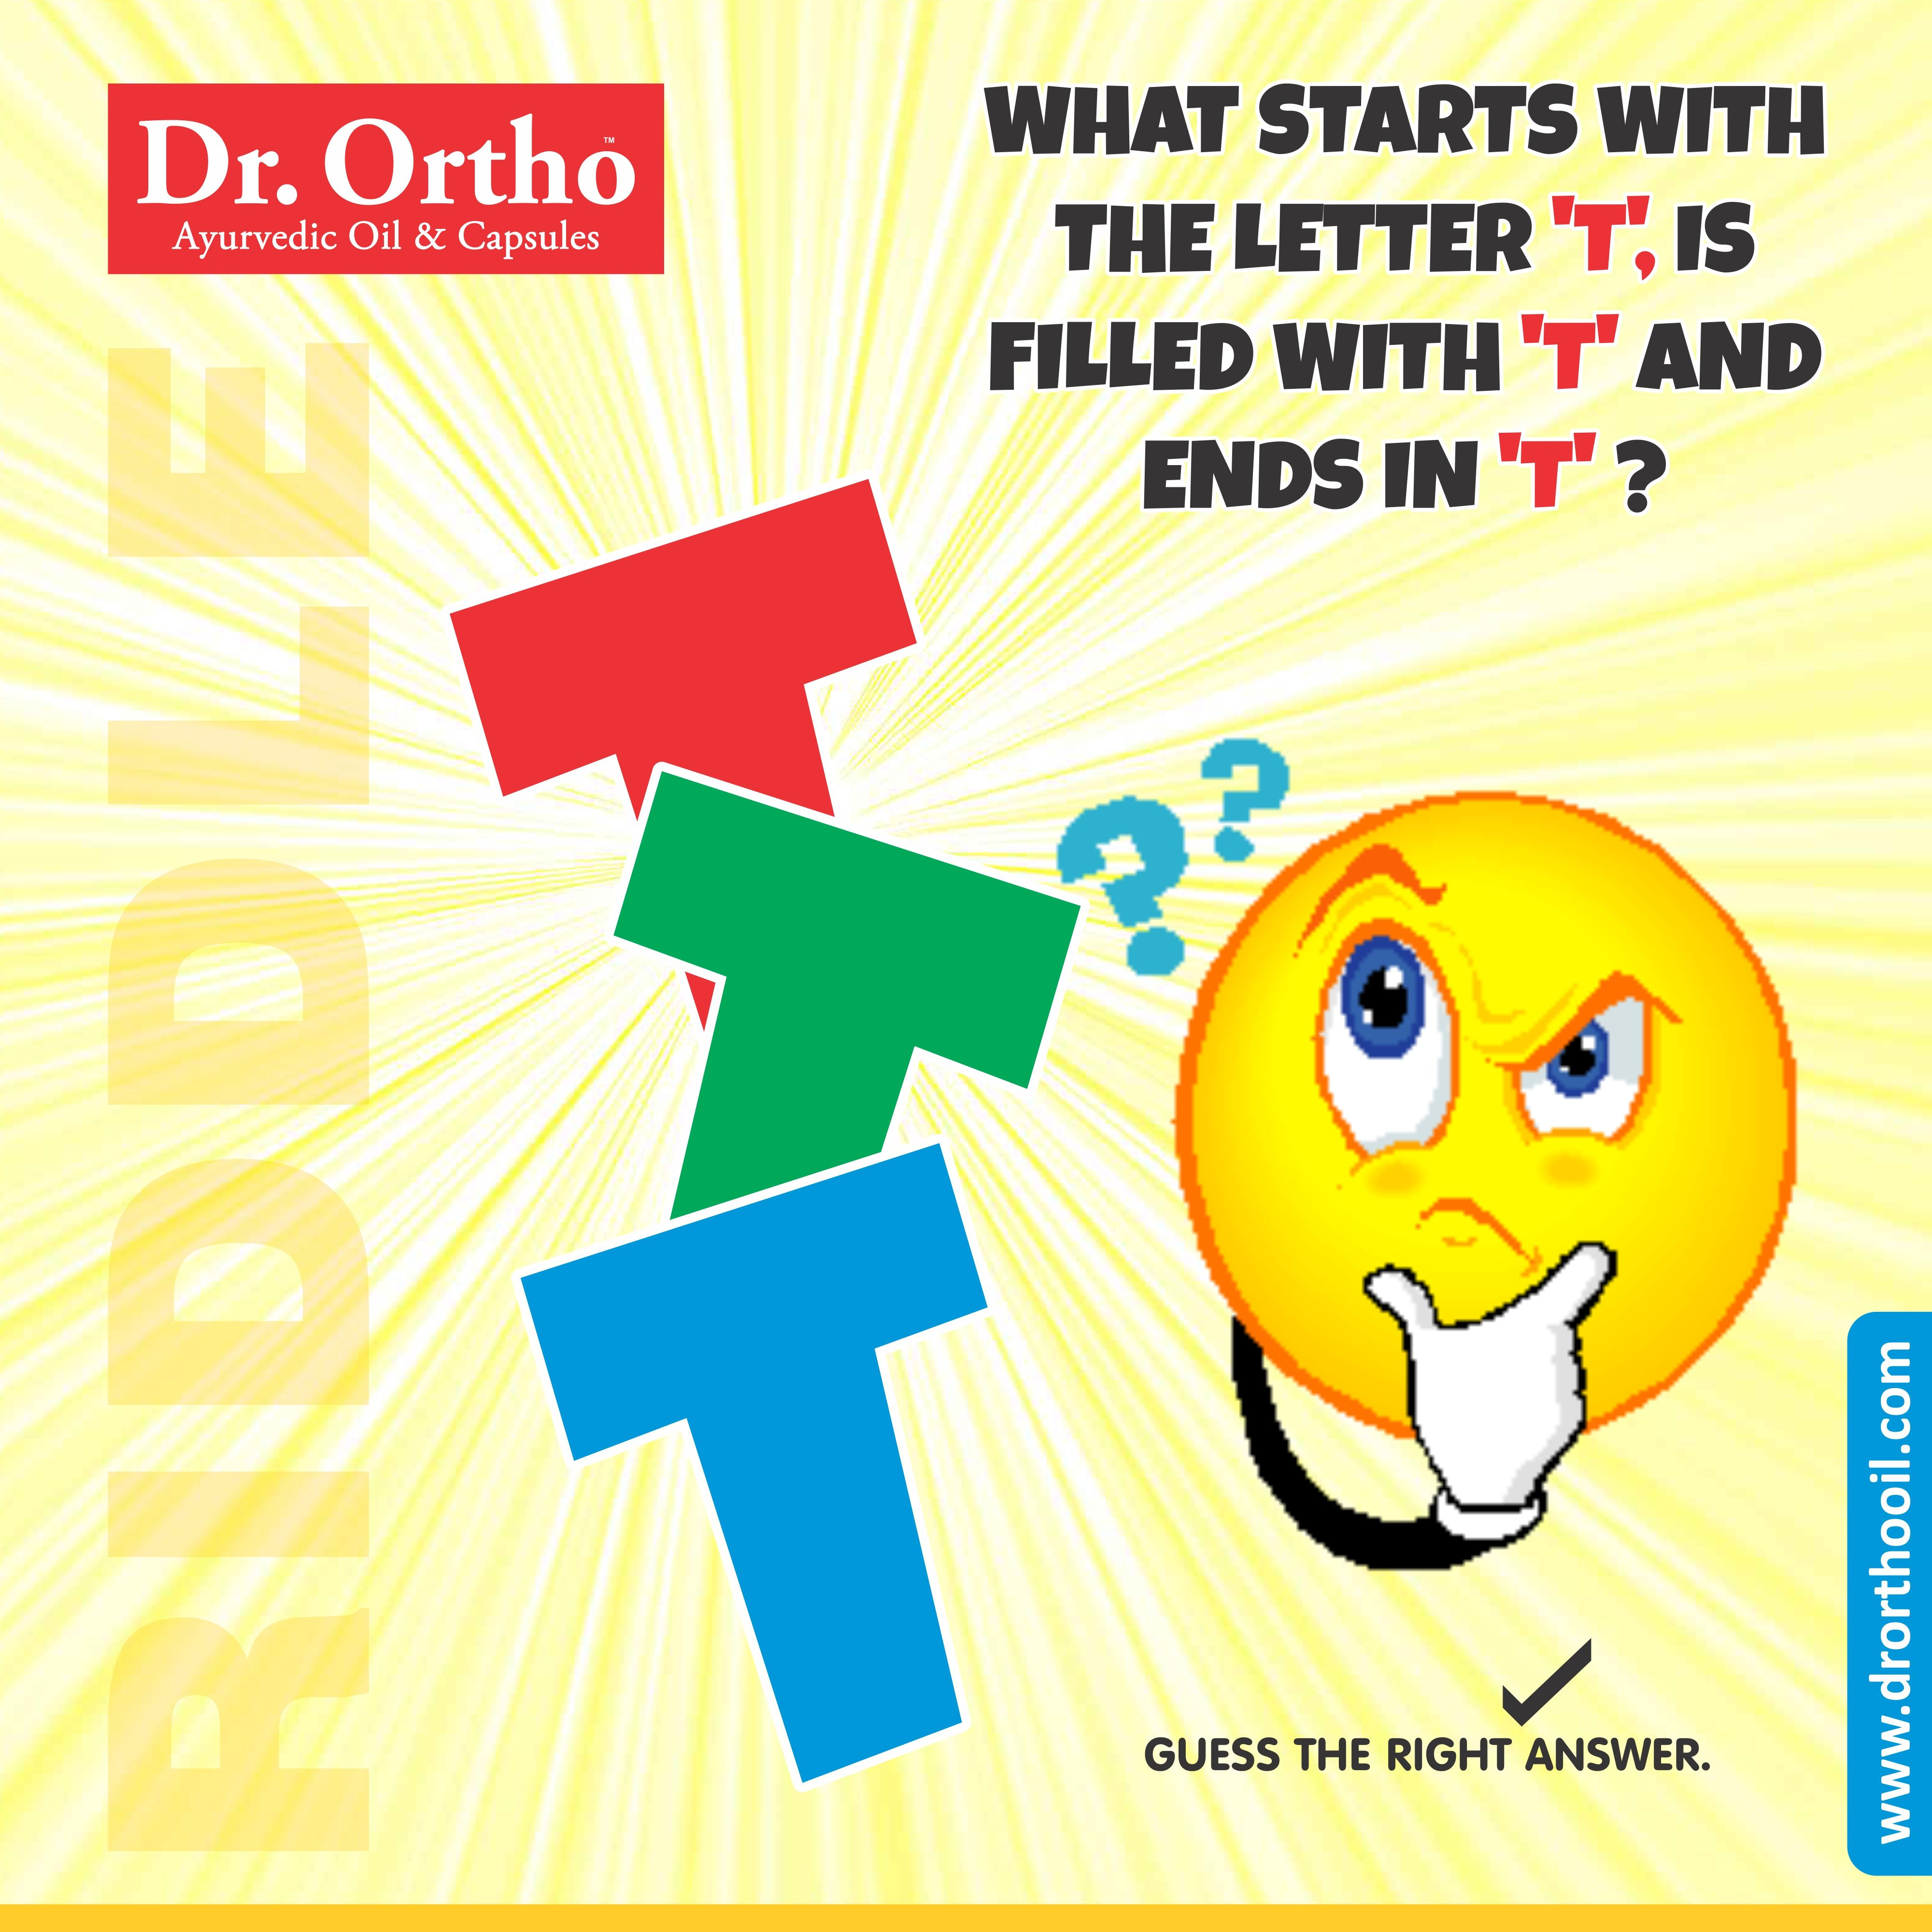 Drortho #Riddle What starts with the letter 'T', is filled with 'T